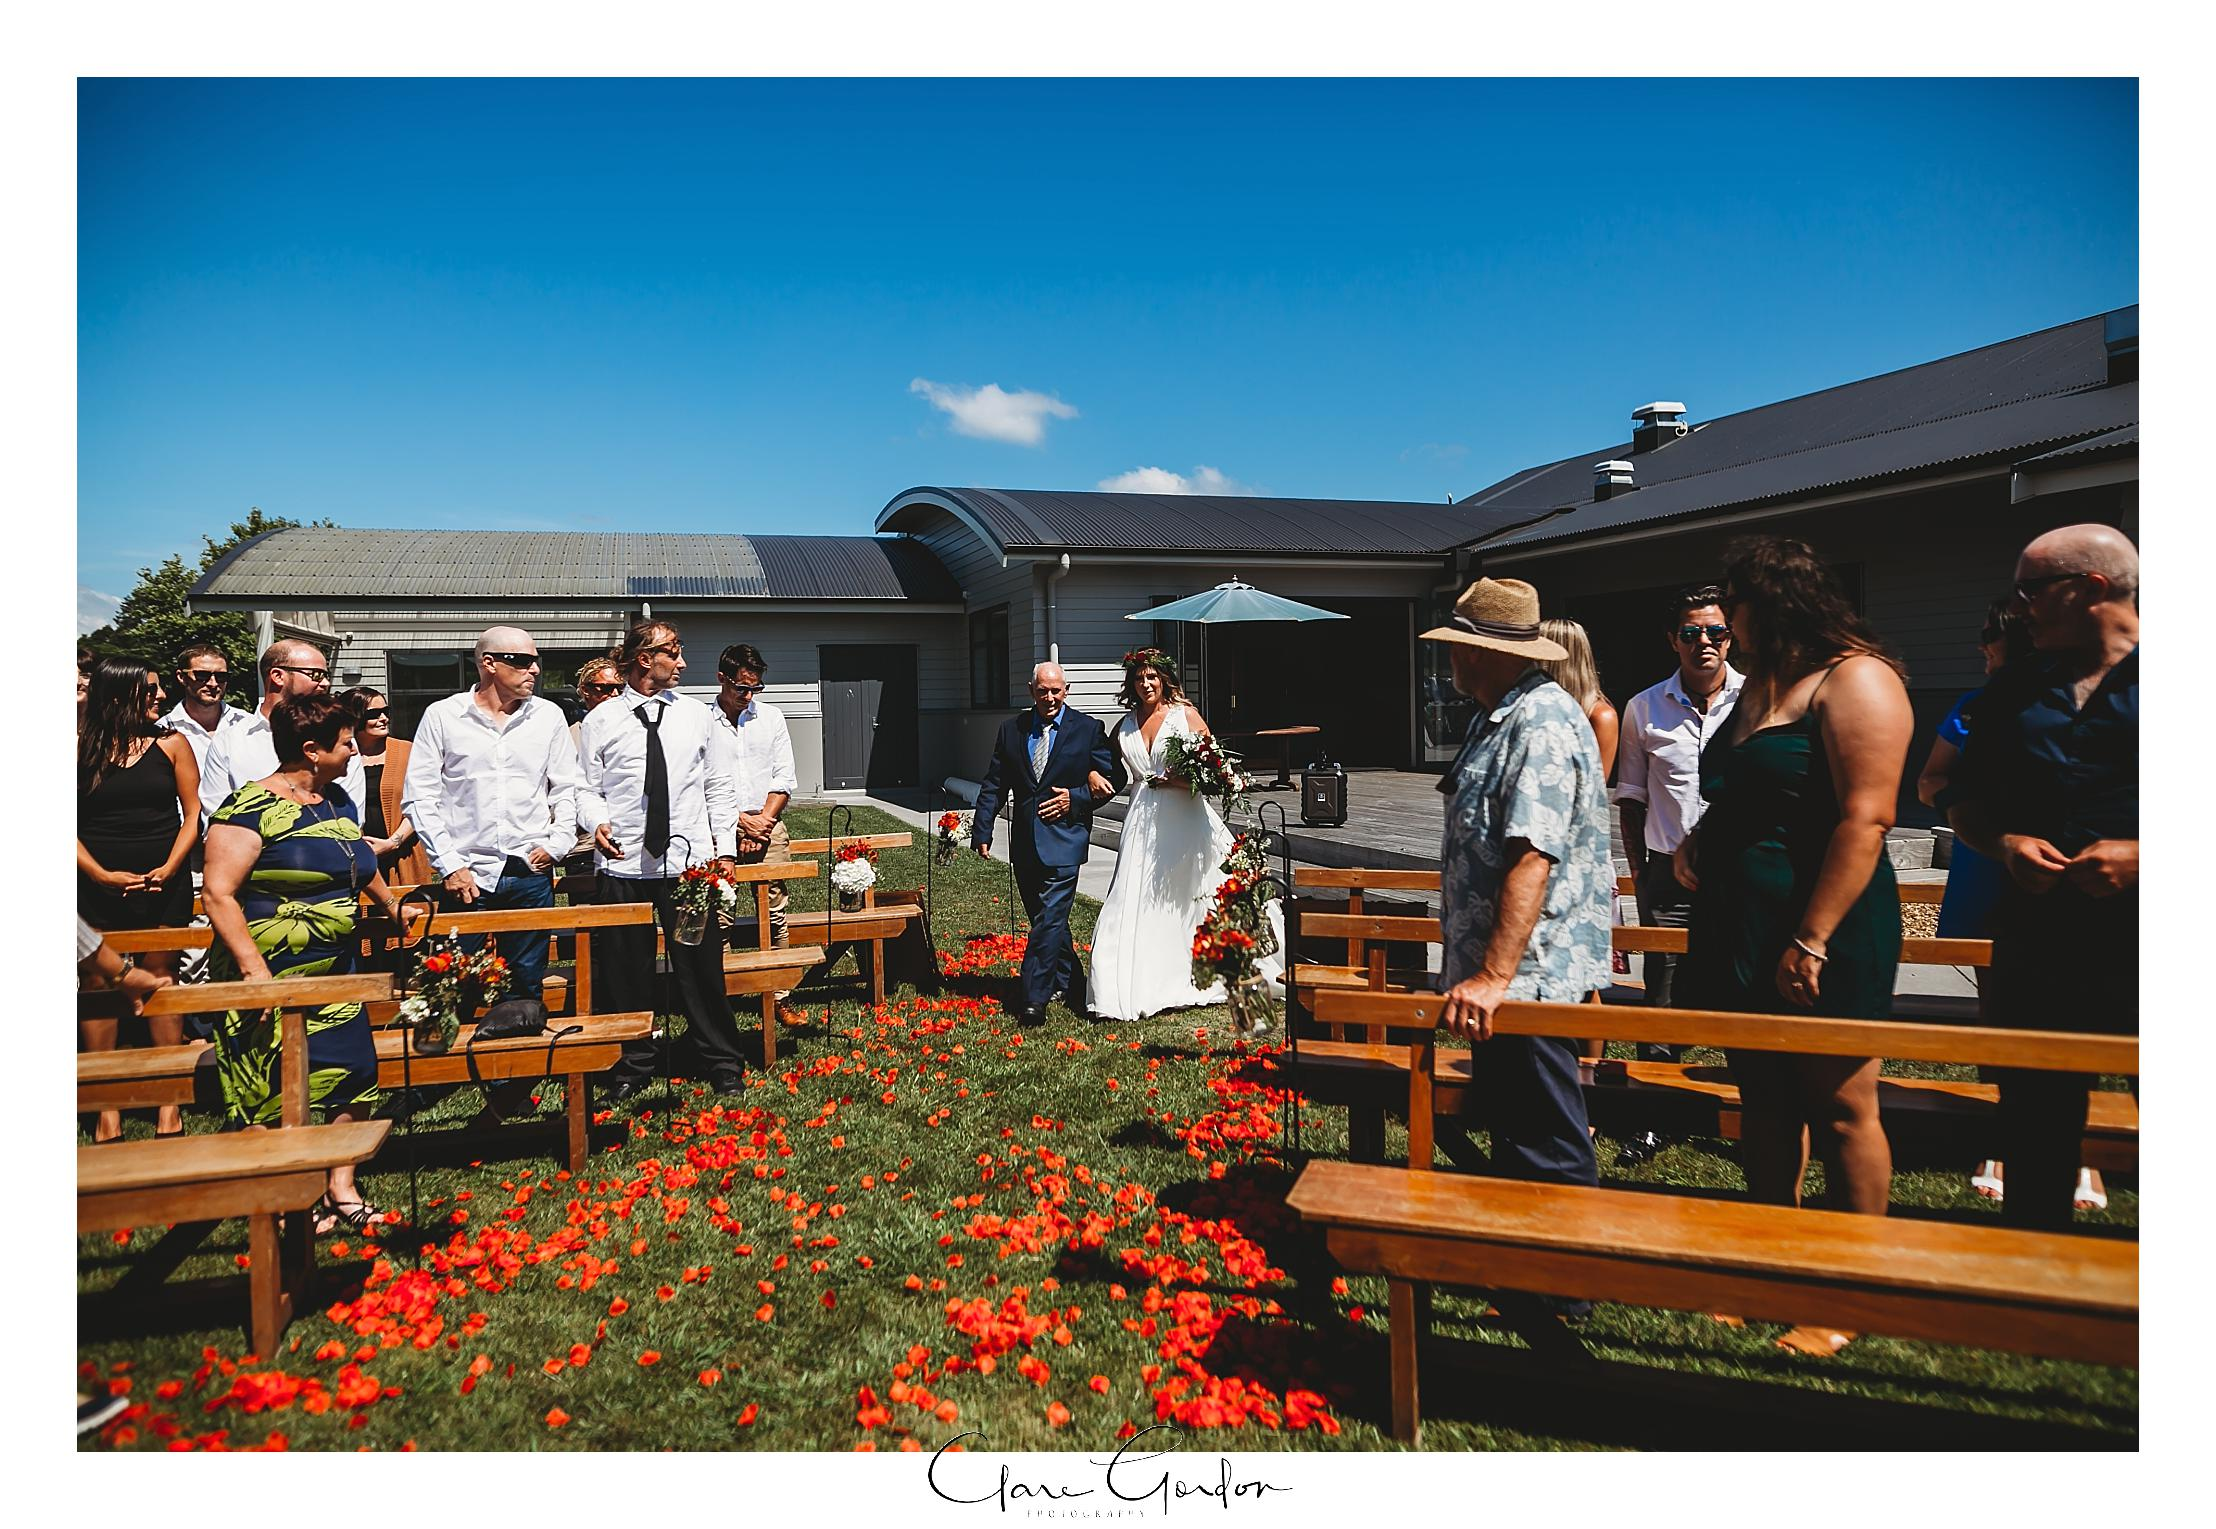 Tauranga-bay-of-plenty-Wedding-Forest-wedding (22).jpg